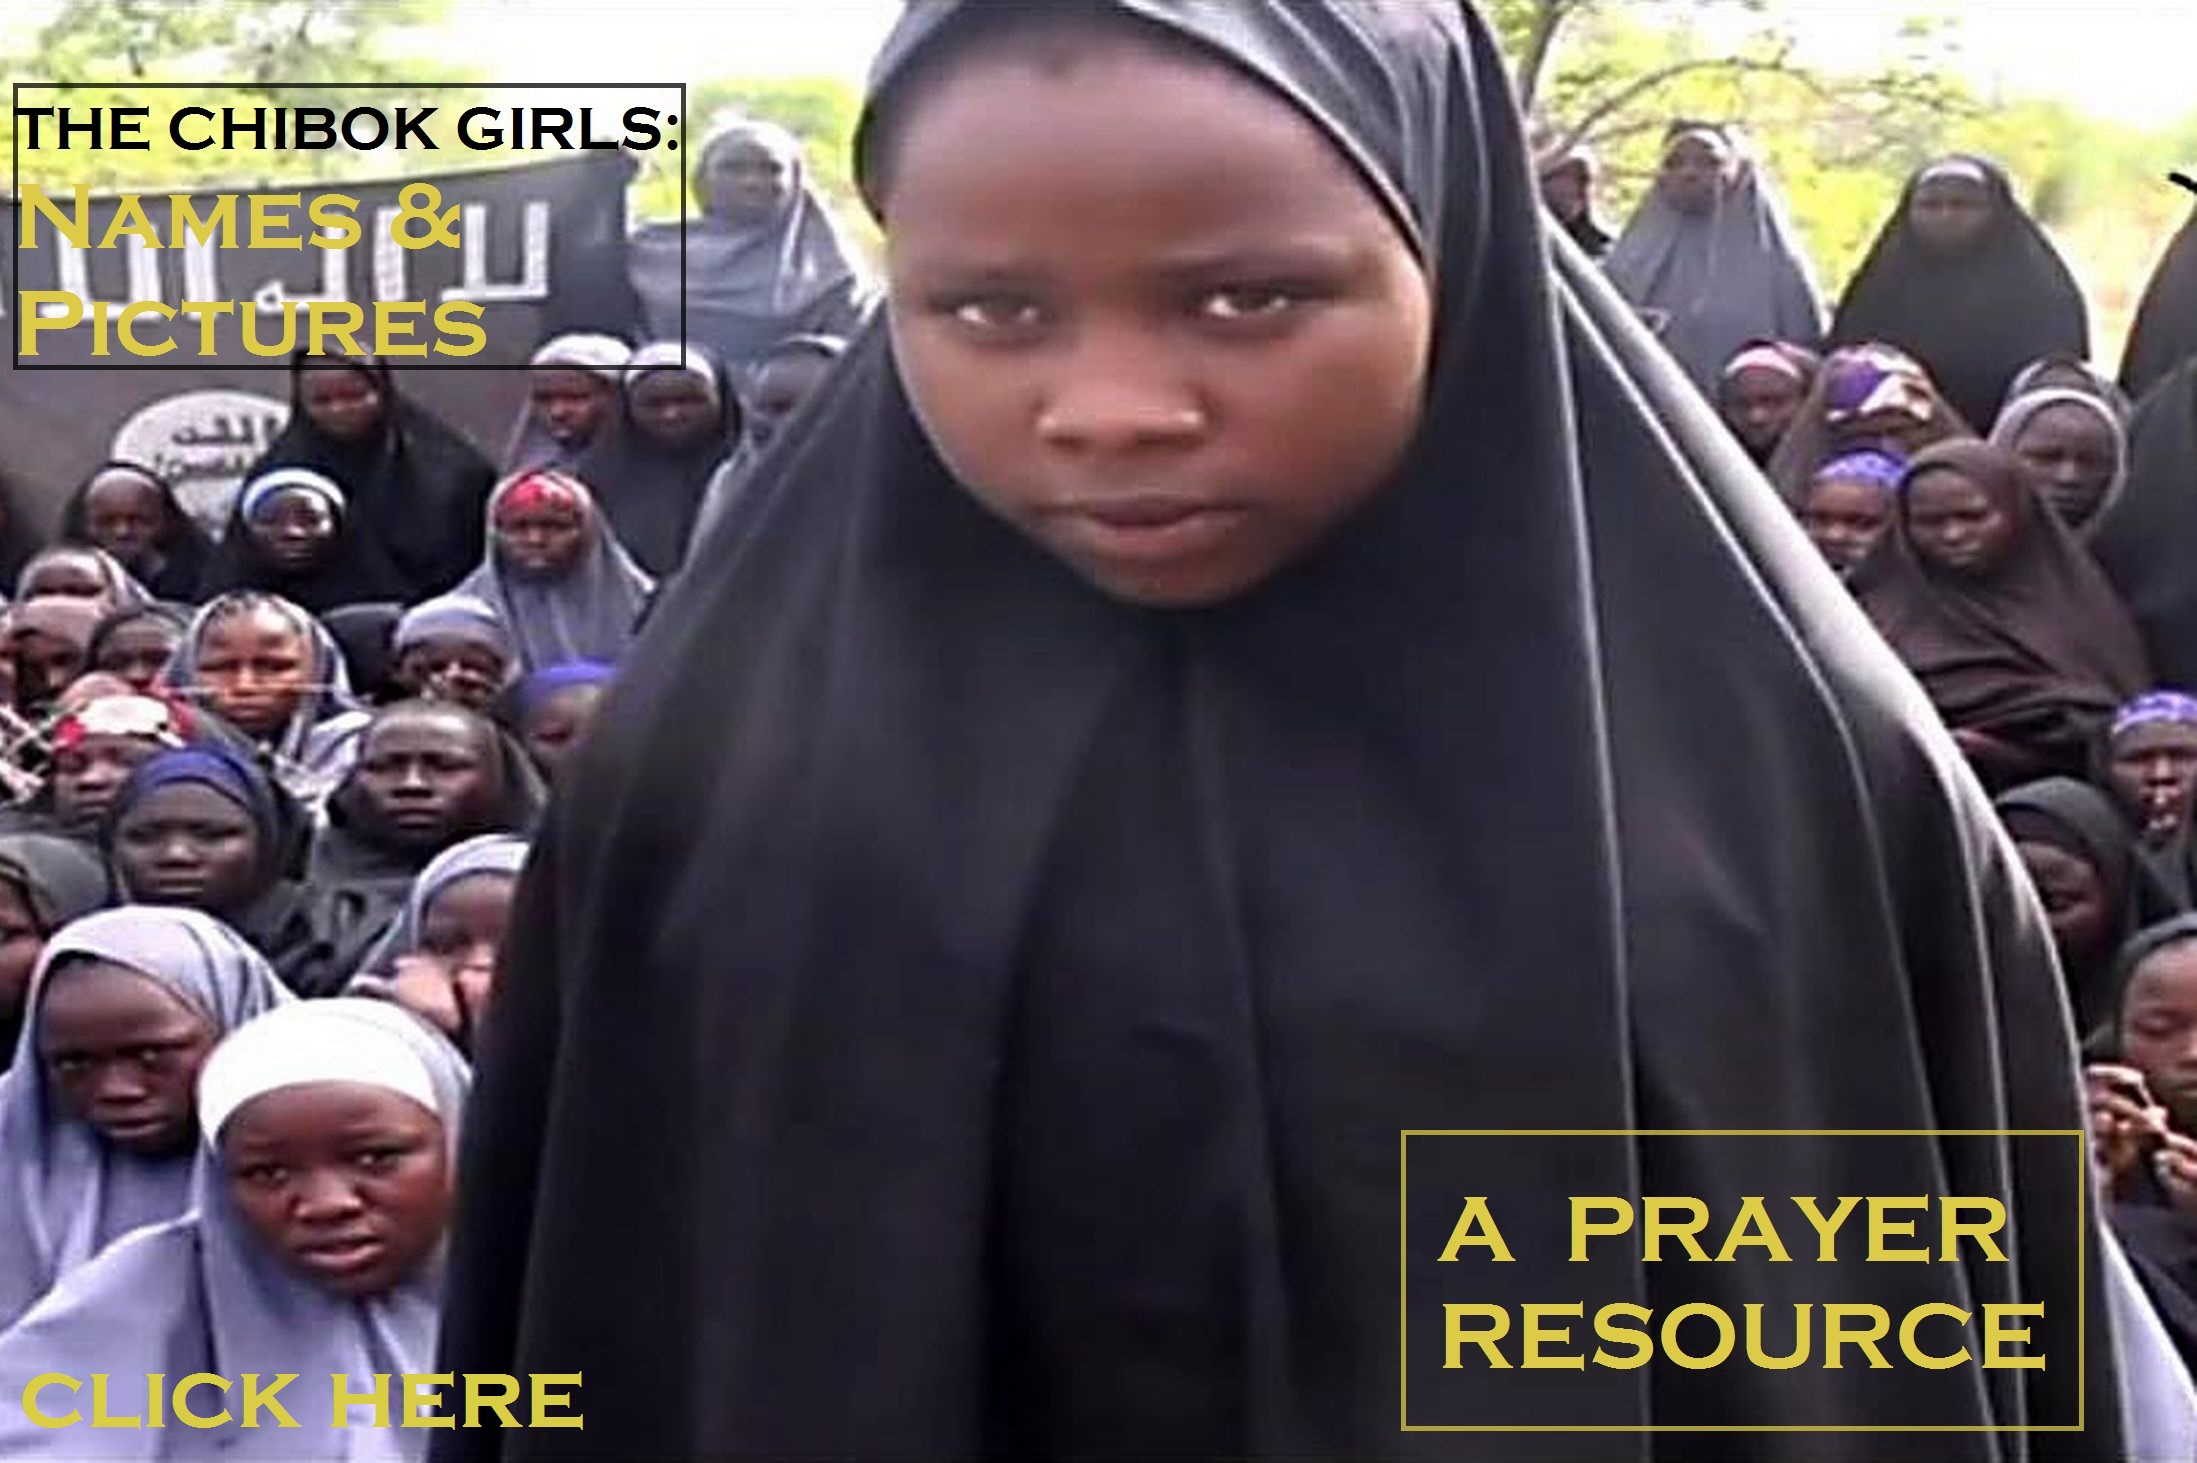 Click here for The Chibok Girls: A Prayer Resource